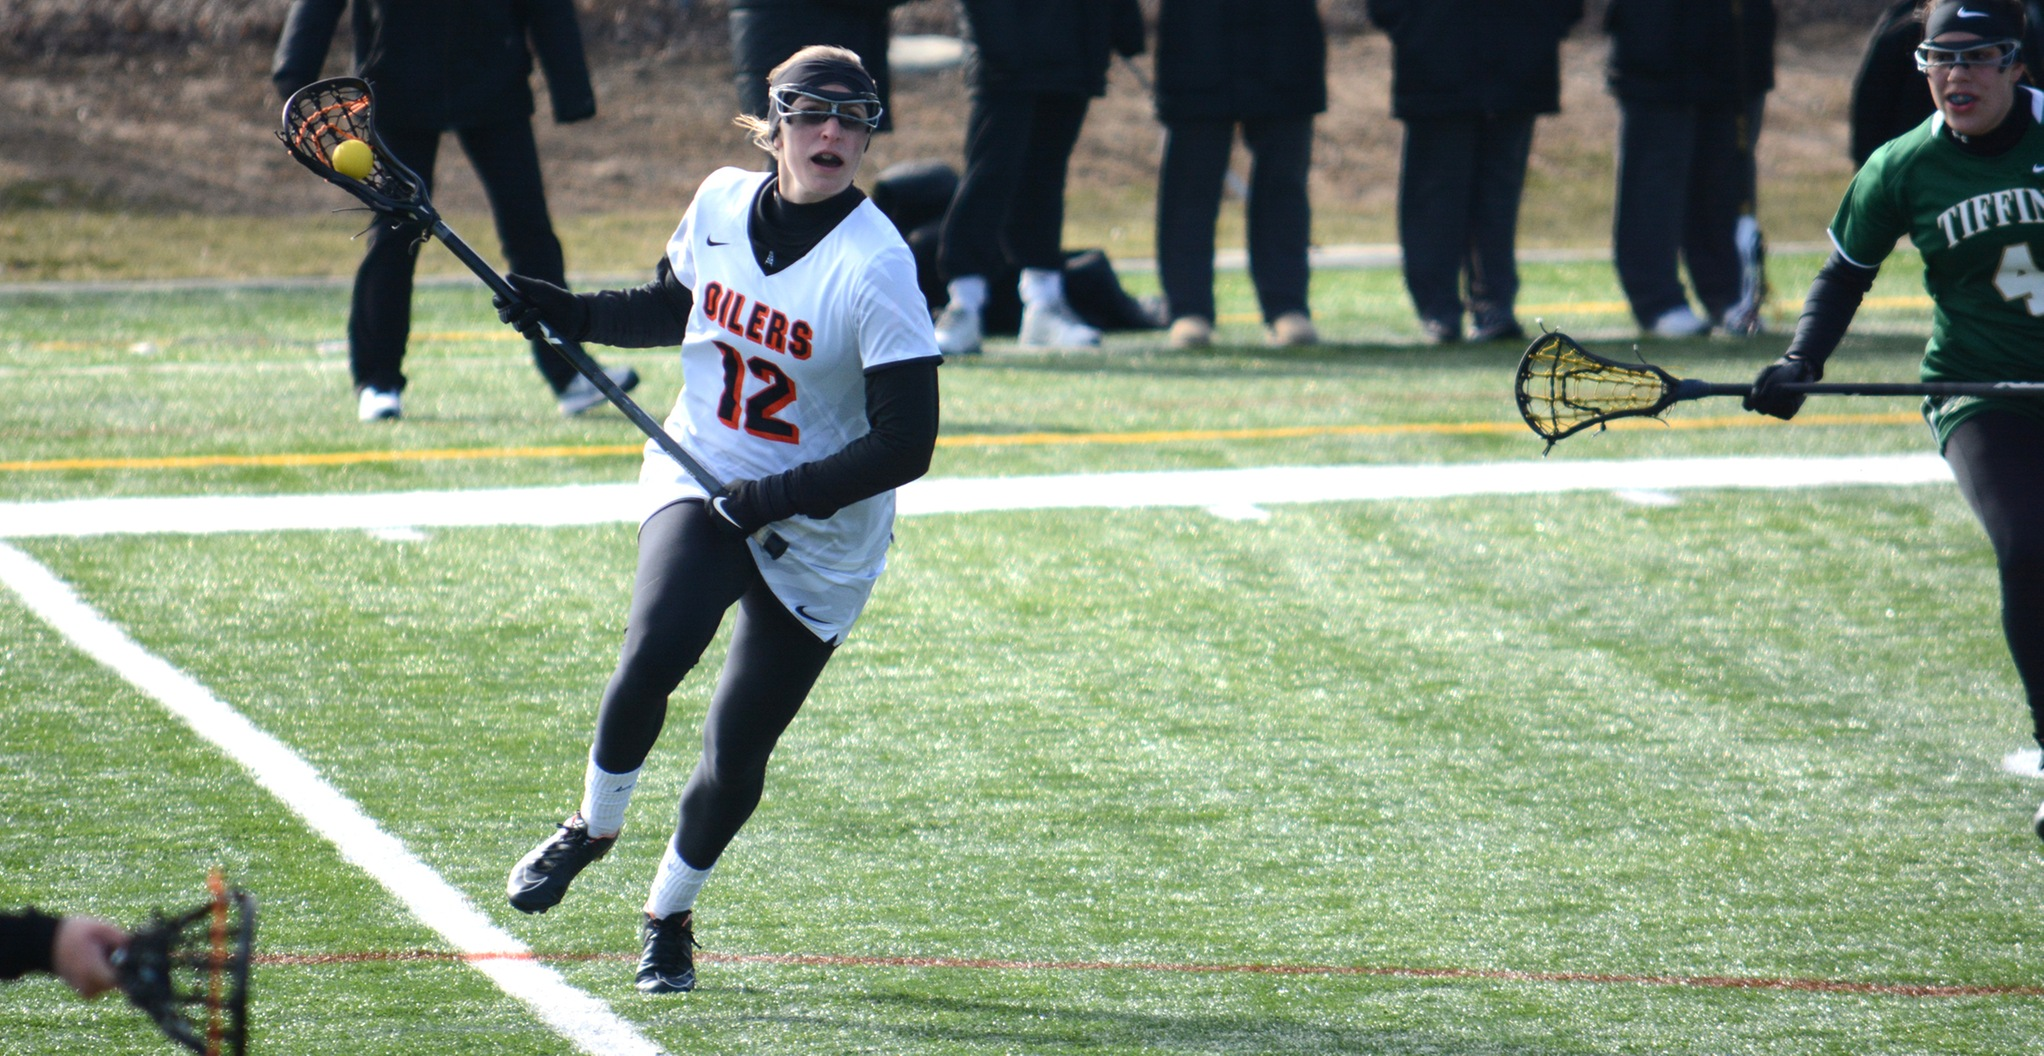 Oilers Rally Late But Fall 11-10 to Dragons